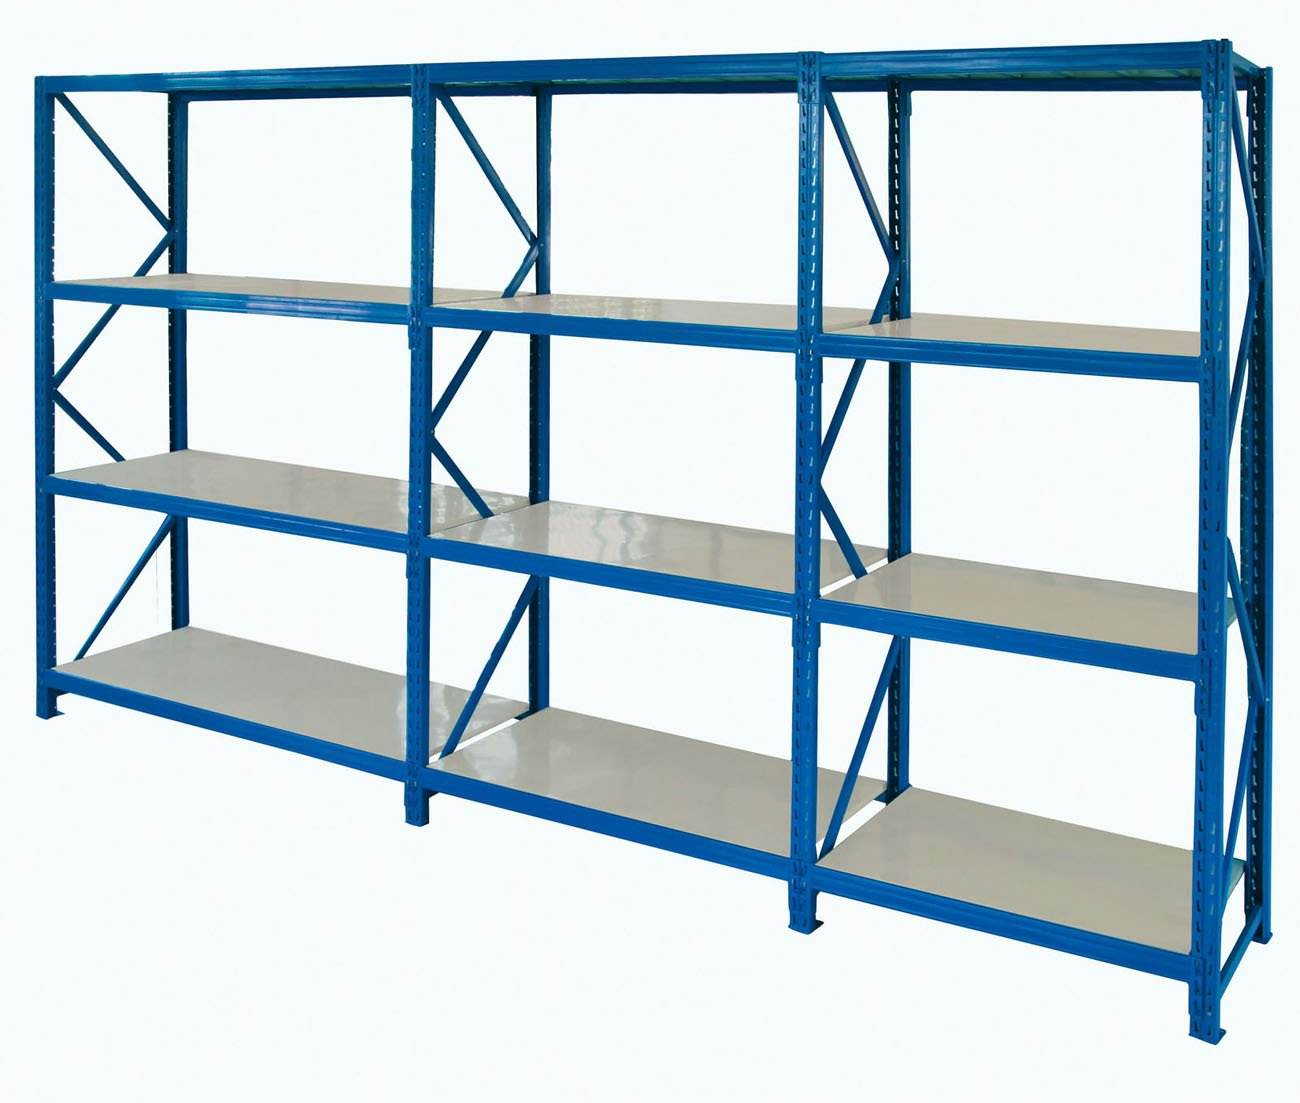 Heavy duty warehouse storage pallet rack,metal rack and shelving systems,adjustable heavy shelves warehouse steel